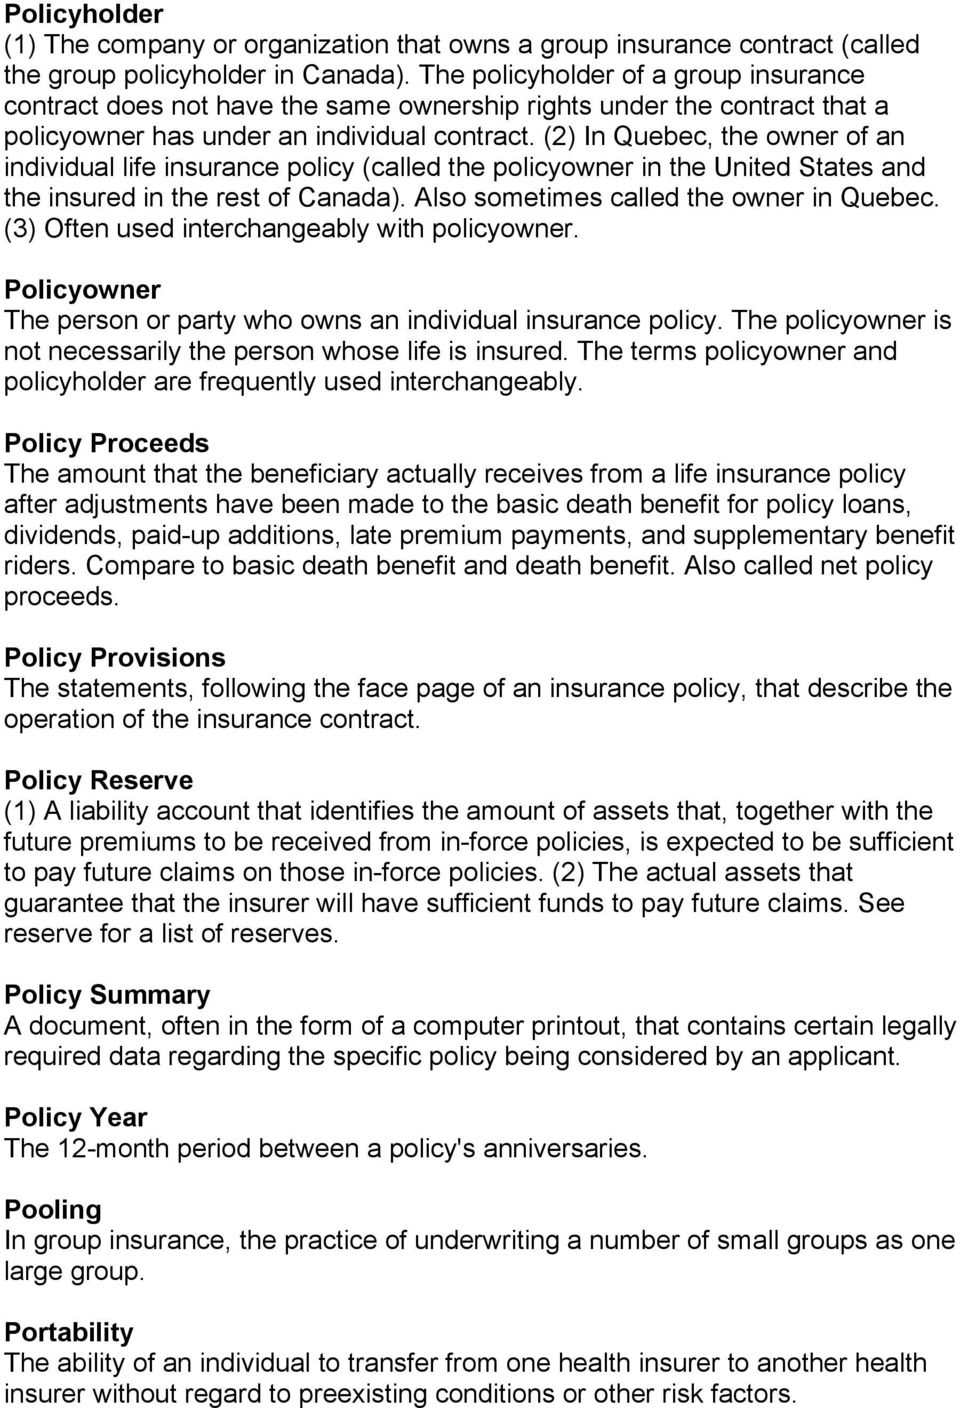 (2) In Quebec, the owner of an individual life insurance policy (called the policyowner in the United States and the insured in the rest of Canada). Also sometimes called the owner in Quebec.